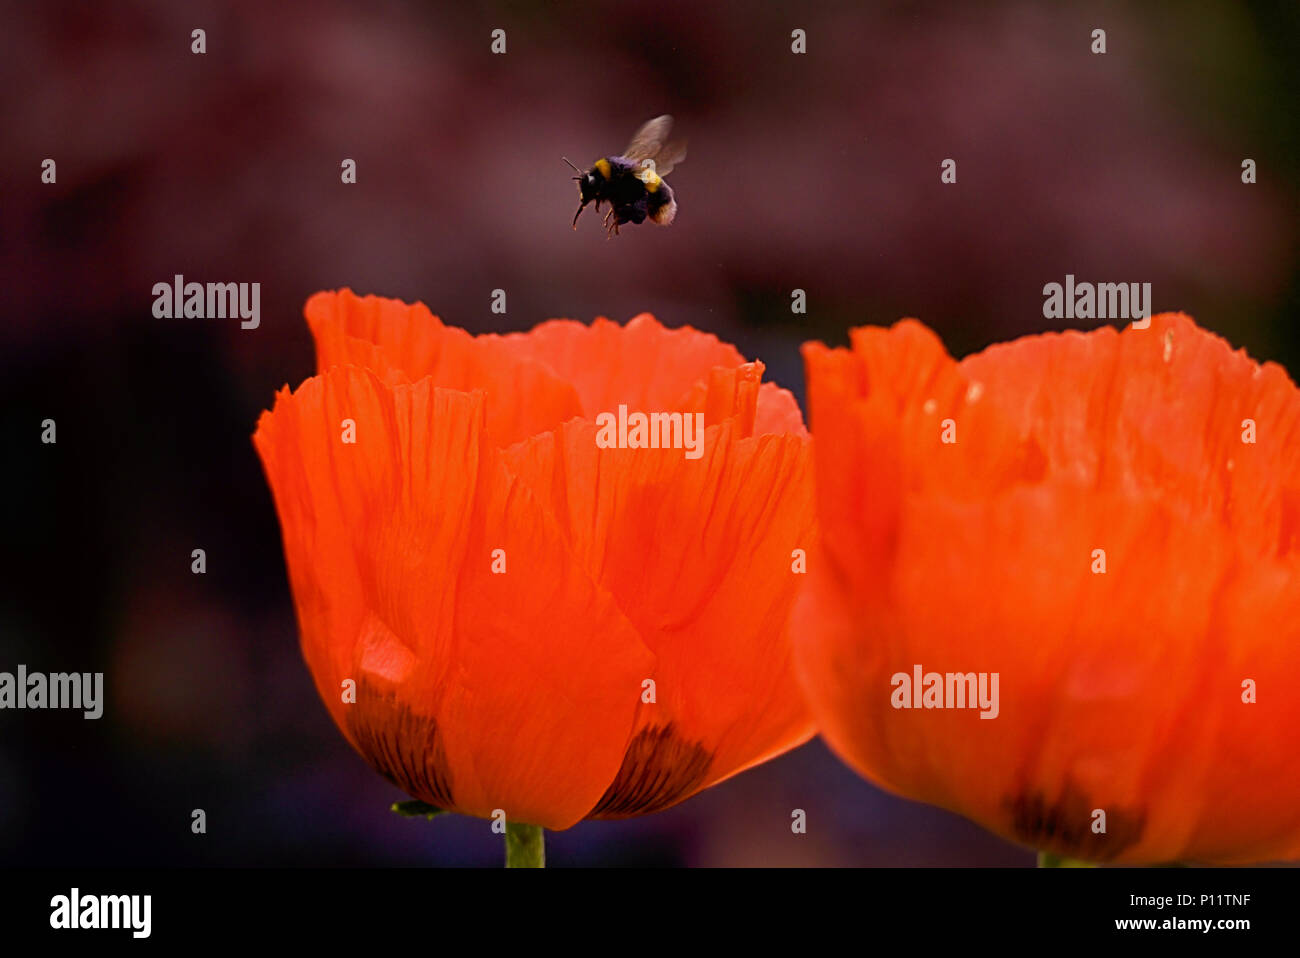 Honey bee tongue stock photos honey bee tongue stock images alamy a bumble bee hovering over a poppy flower stock image izmirmasajfo